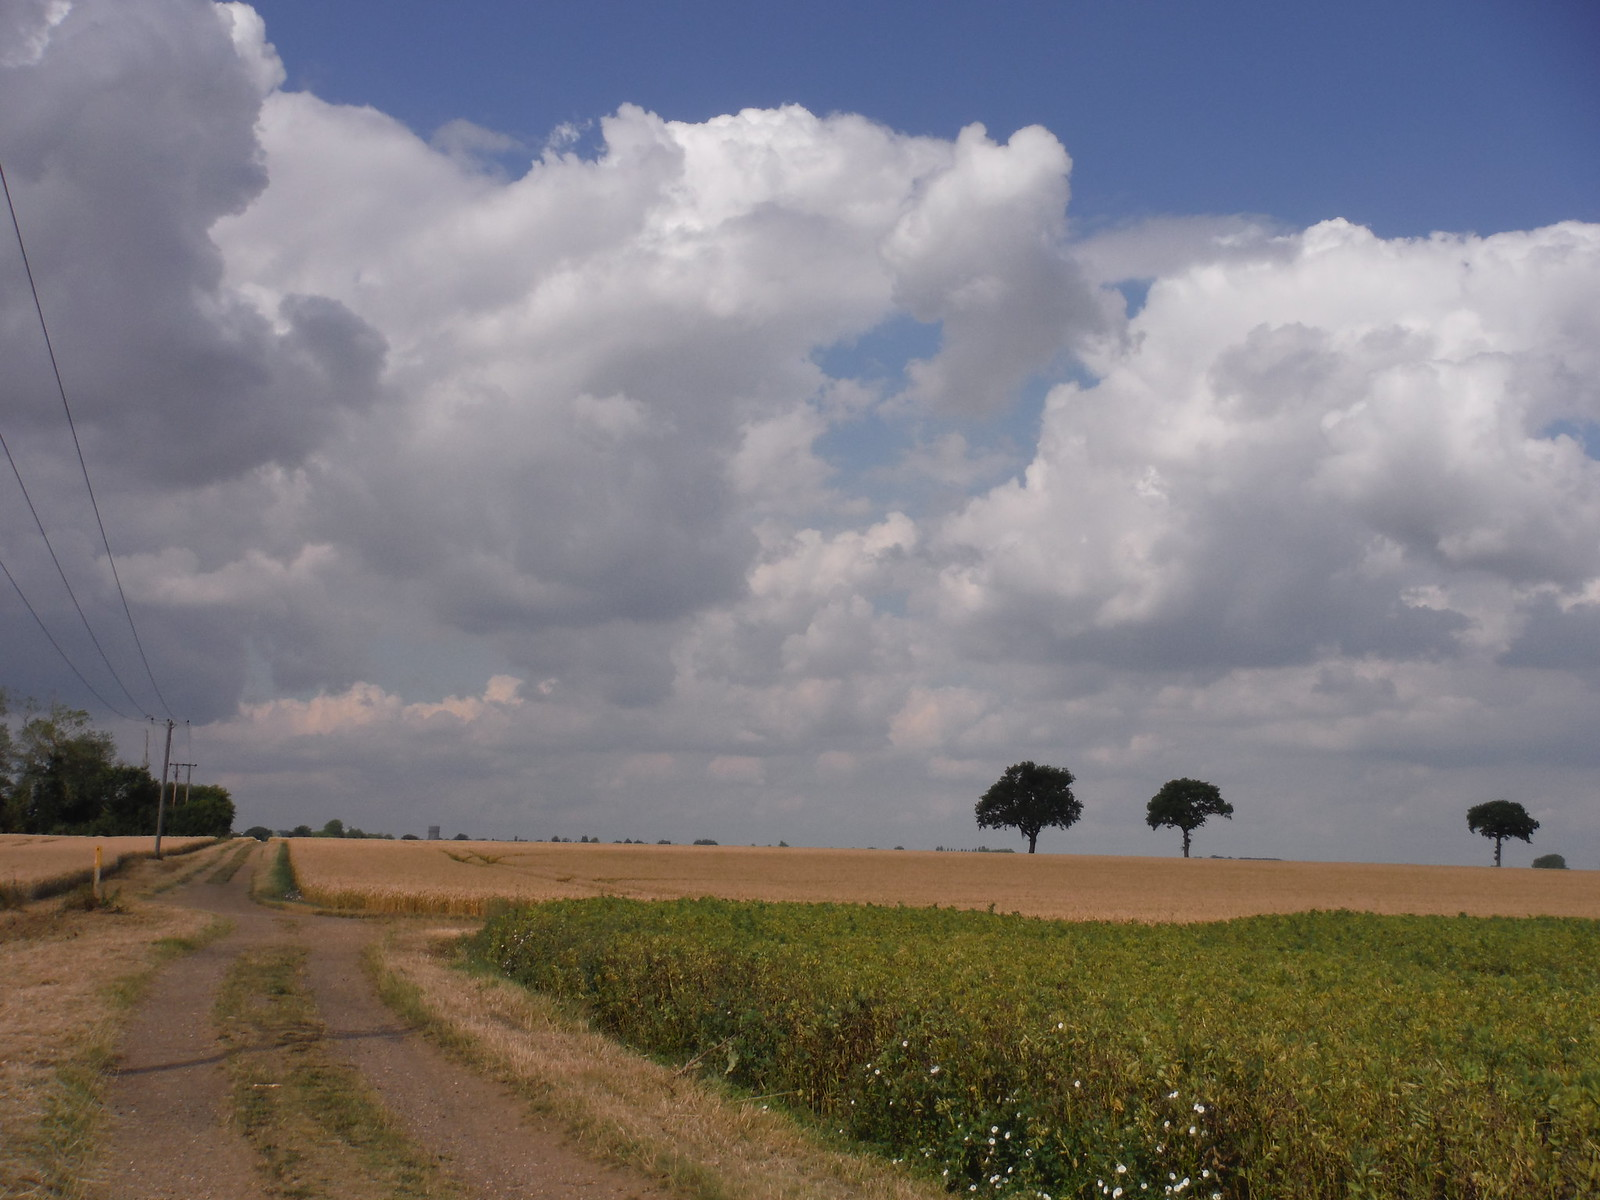 Big Skies and Long Views in Hertfordshire SWC Walk 233 - Arlesey to Letchworth Garden City